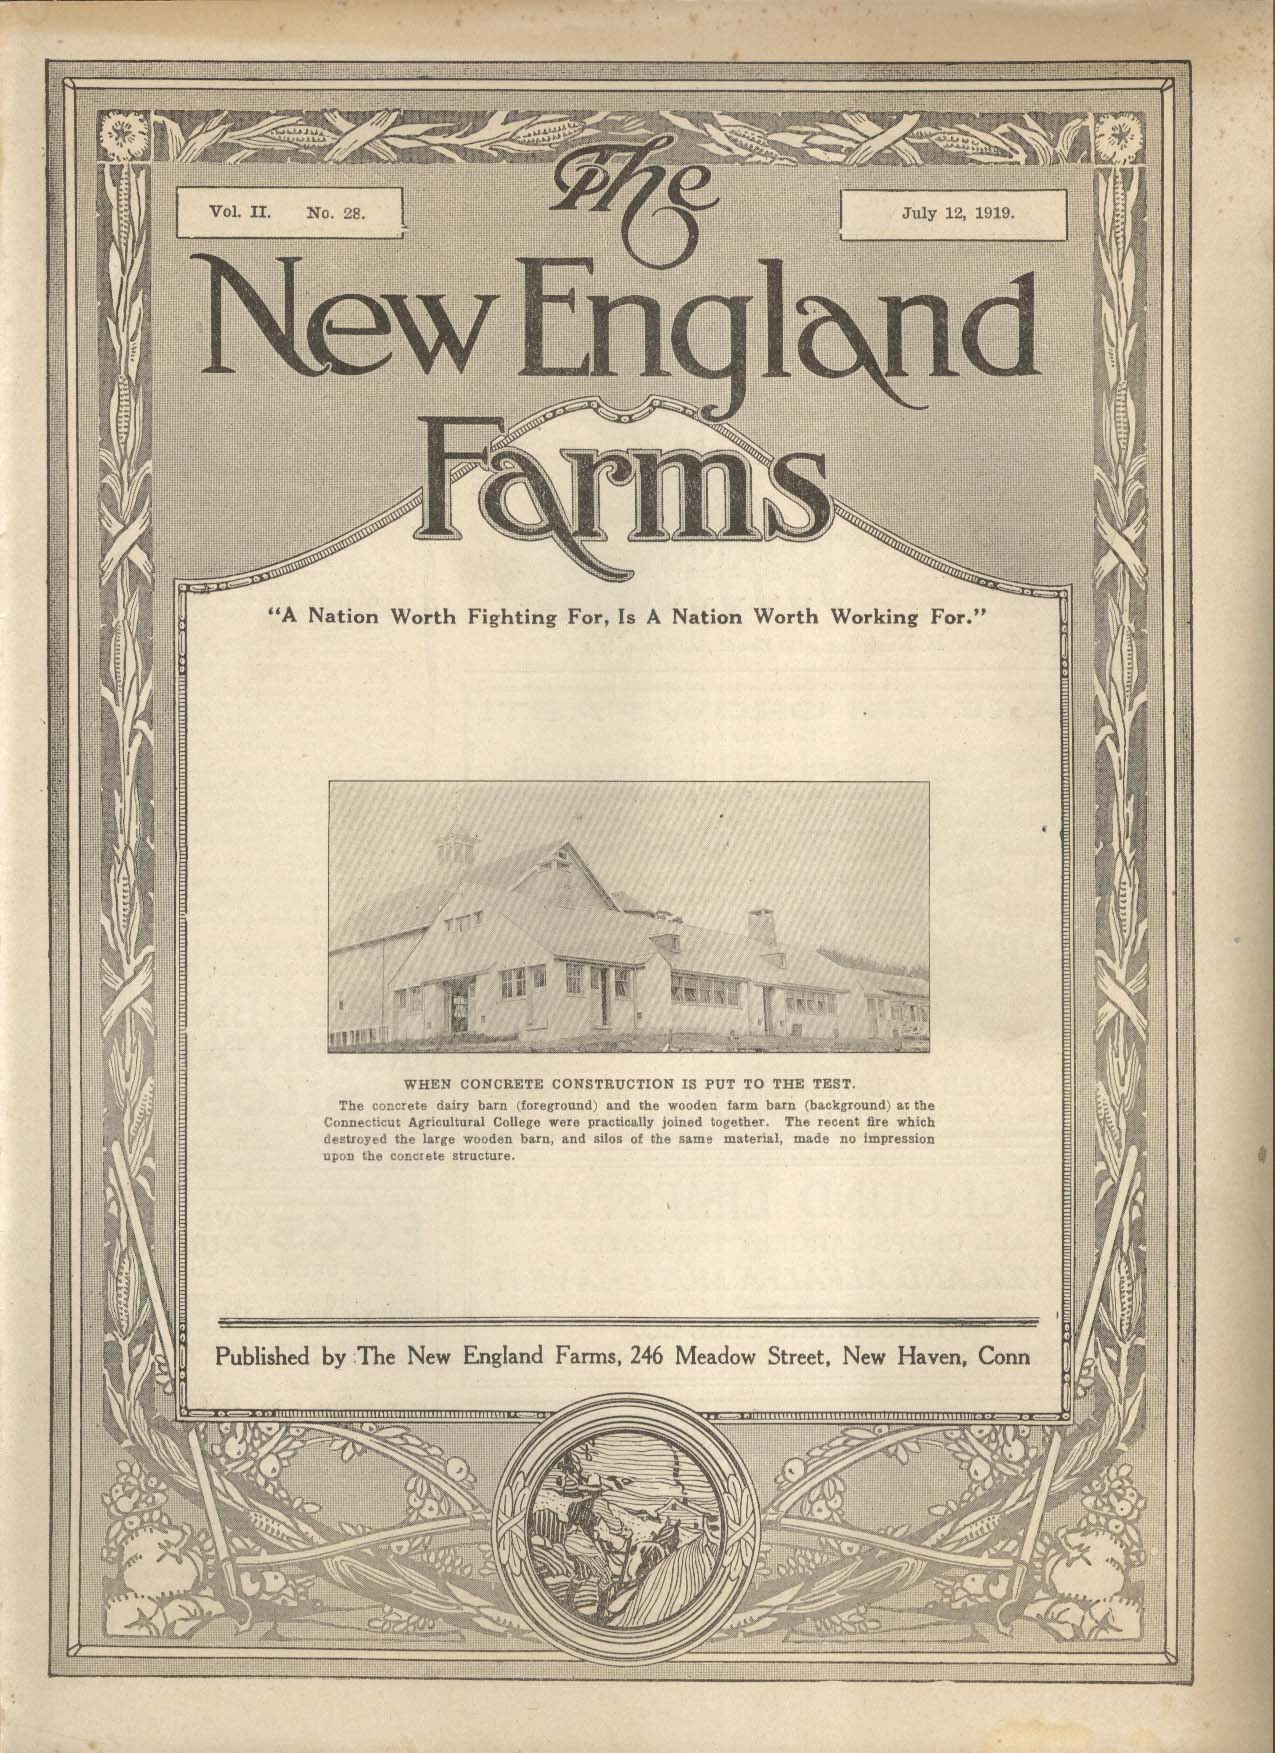 NEW ENGLAND FARMS Concrete Dairy Barn Connecticut Agricultural College 7/12 1919